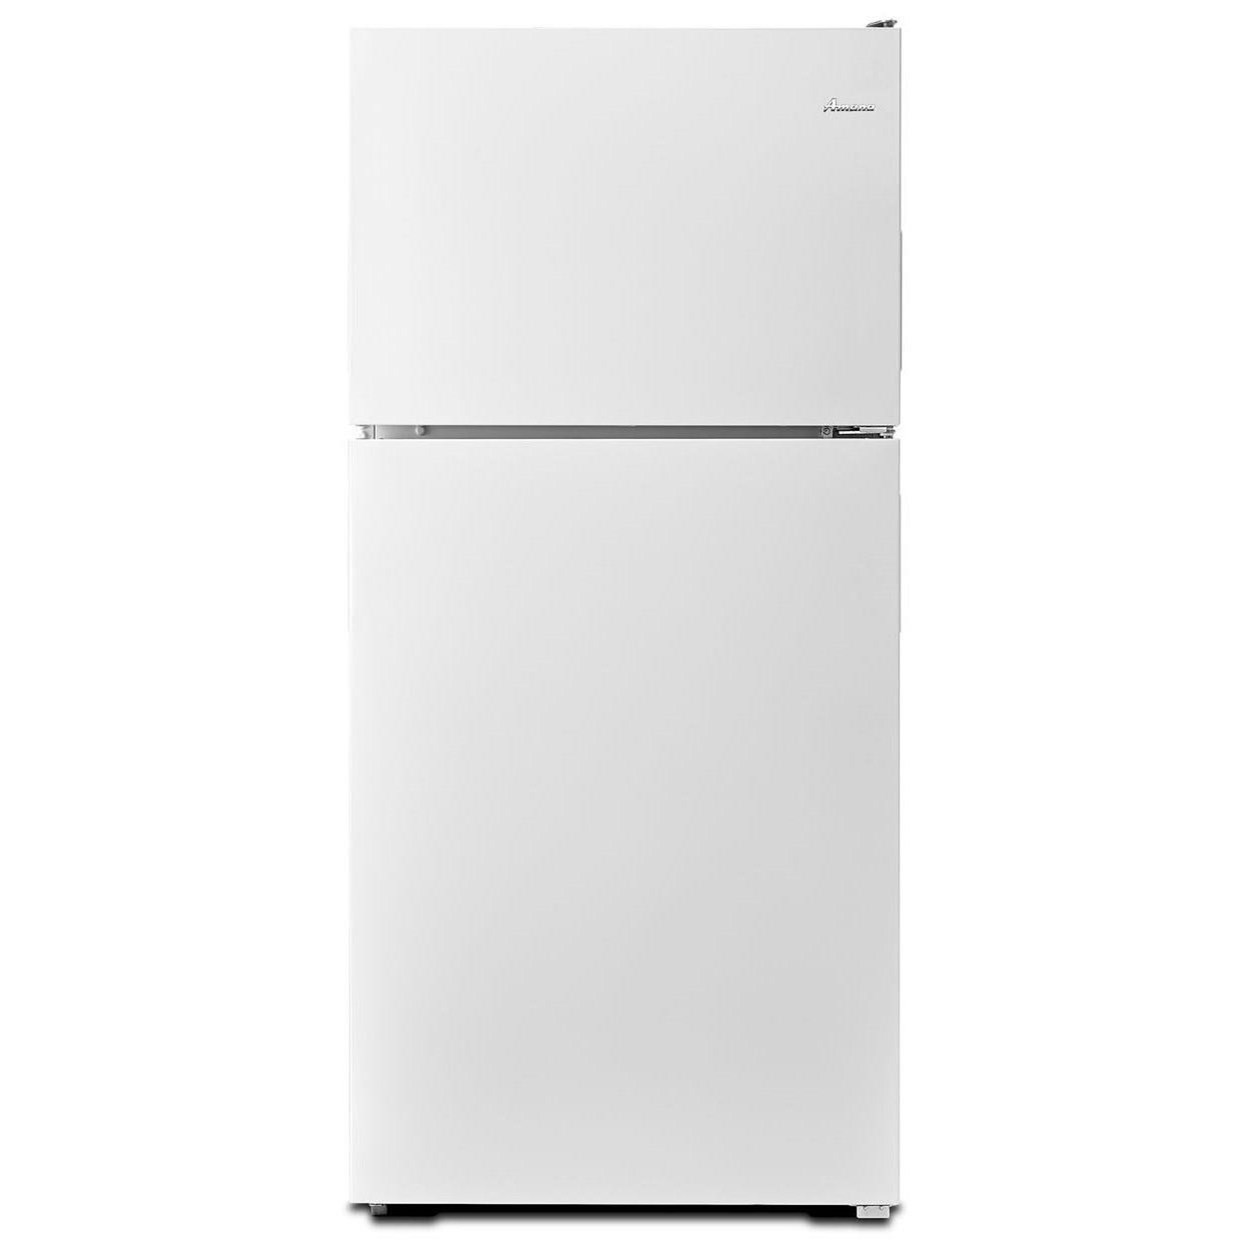 Amana Top Mount Refrigerators 30-inch Wide Top-Freezer Refrigerator with G - Item Number: ART348FFFW